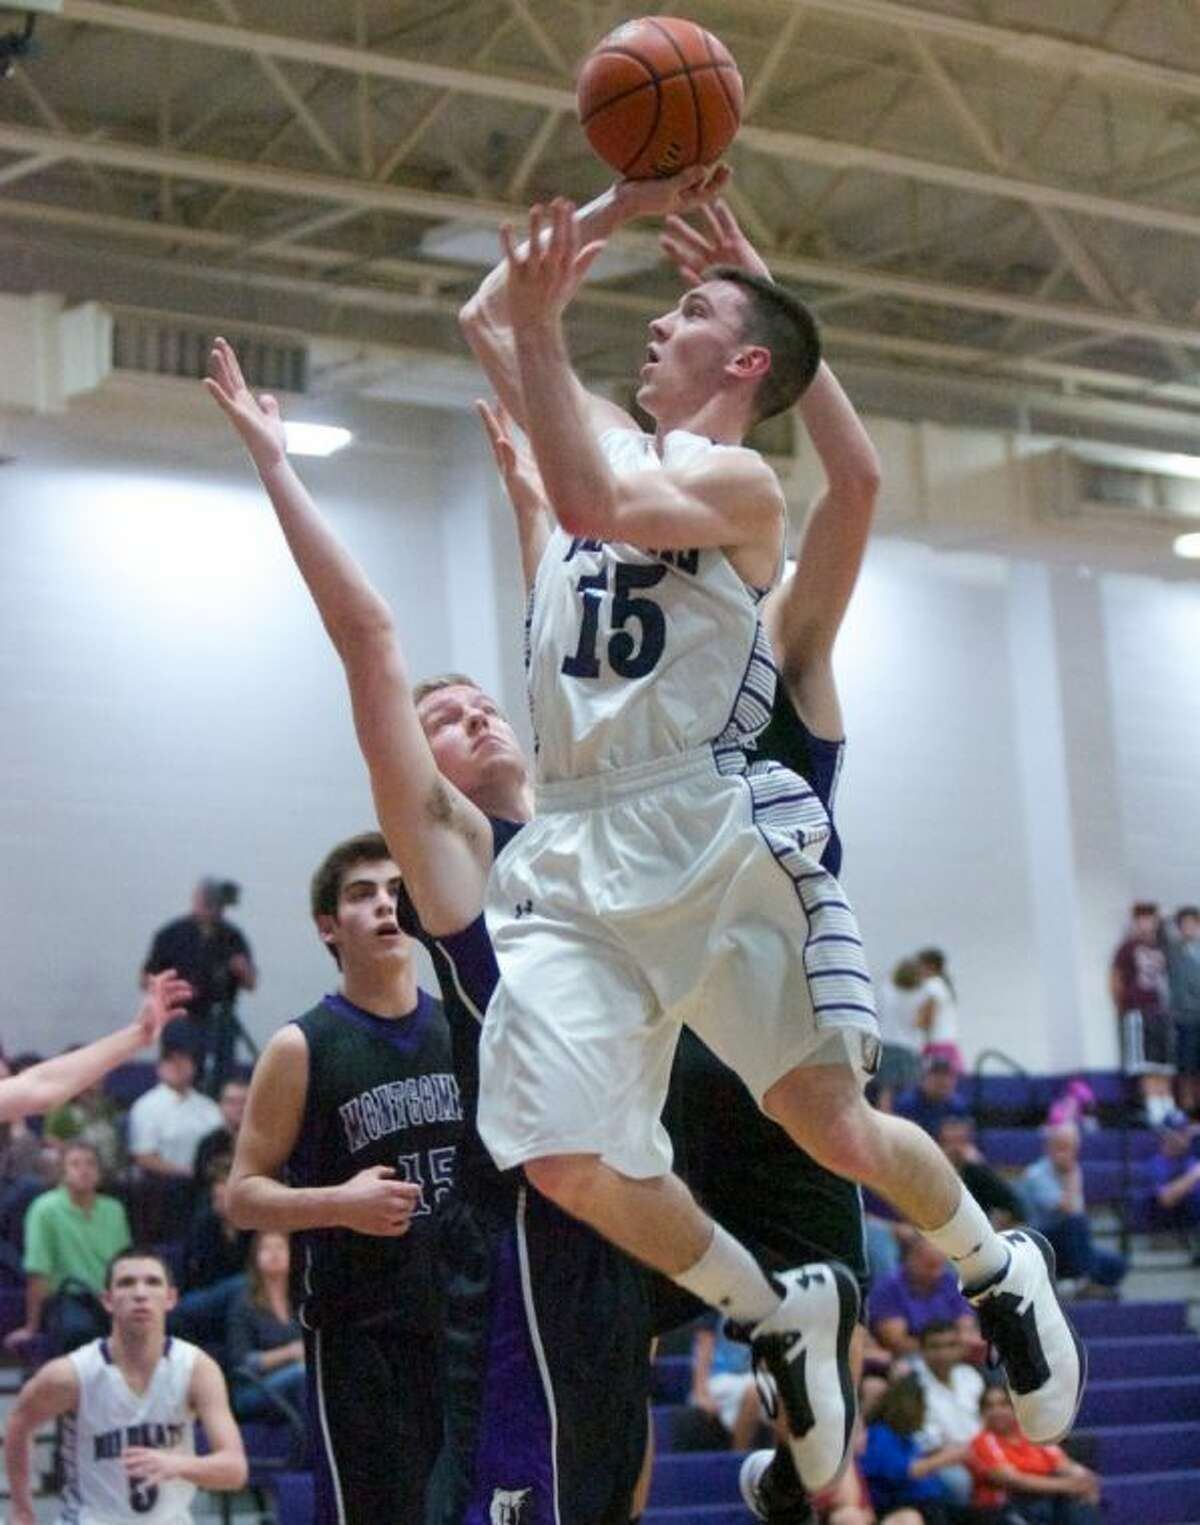 As Willis' only senior, Payne Andrus led the Wildkats to an 18-12 record and a tie for second place in District 18-4A.